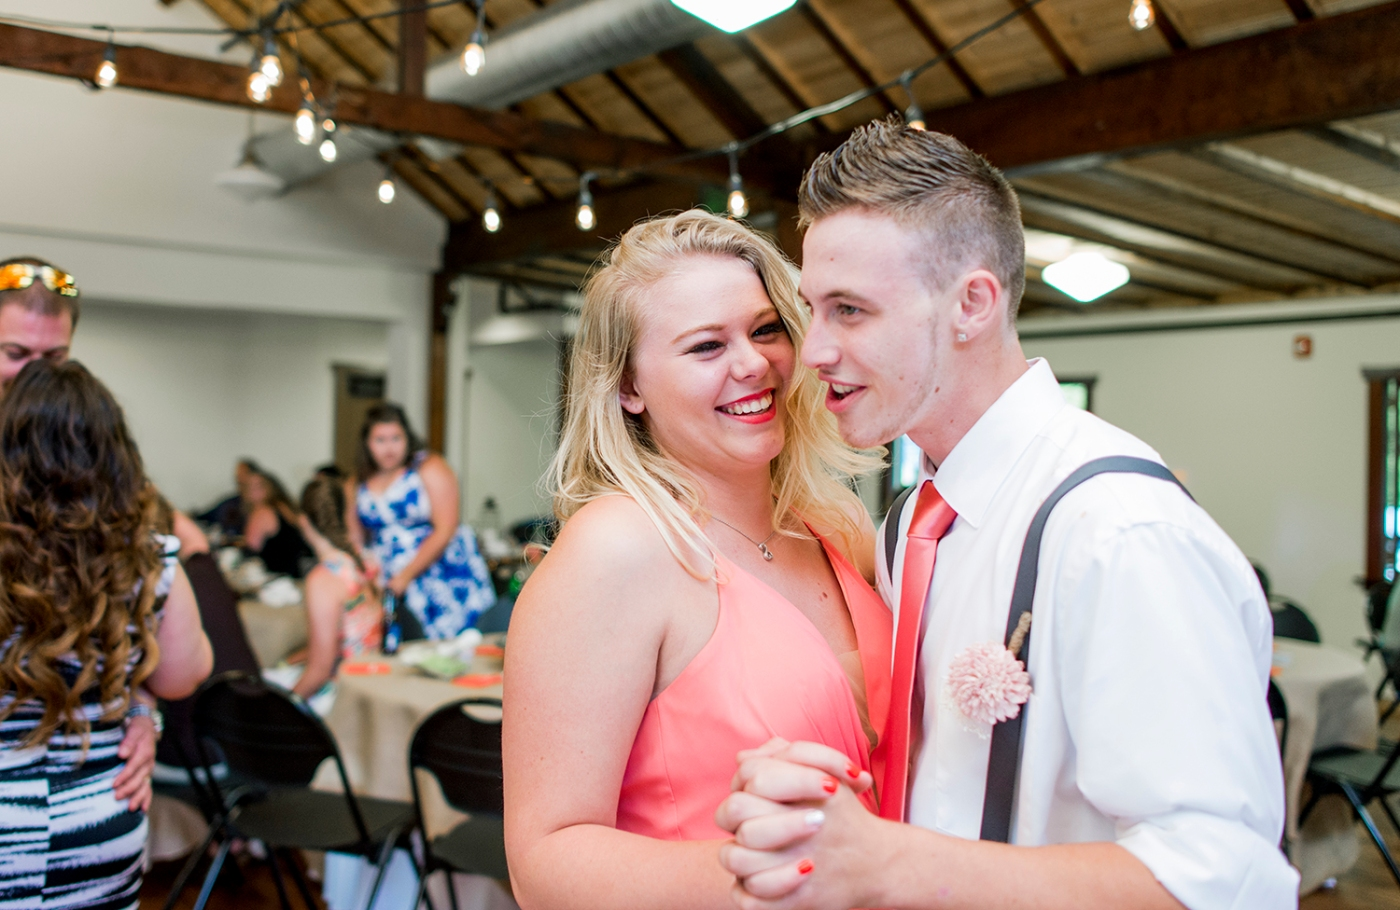 Jane_S_Seattle_photography_Kadie_and_Steve_2016_Des_Moines_Marina_Wedding_DSC_2109